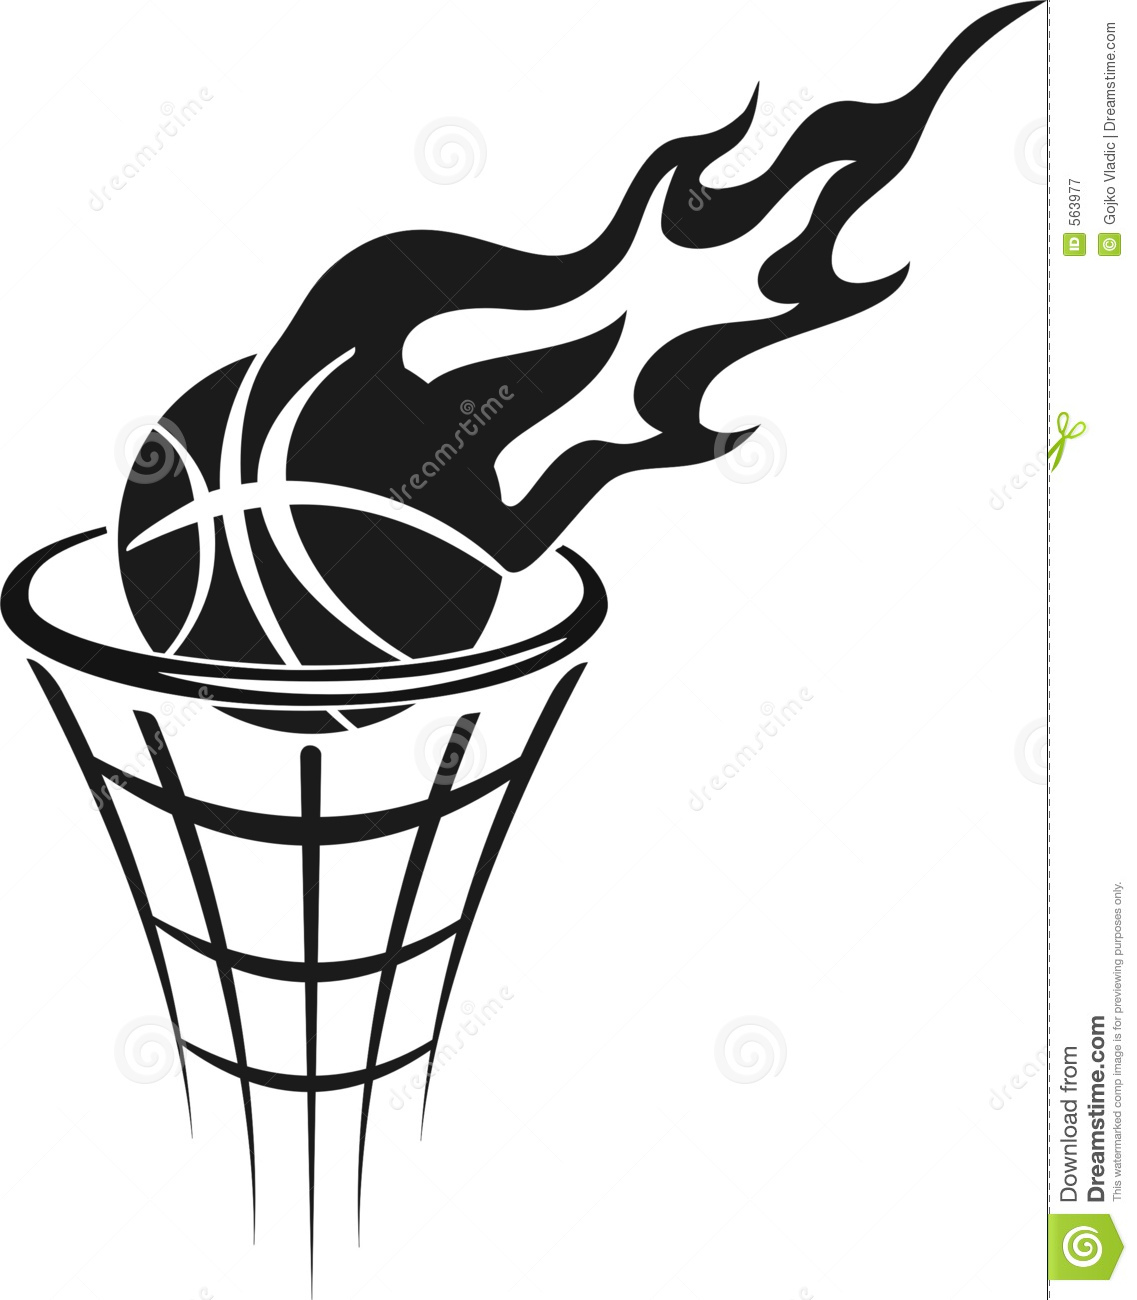 hight resolution of 1137x1300 basketball black and white abstract clipart